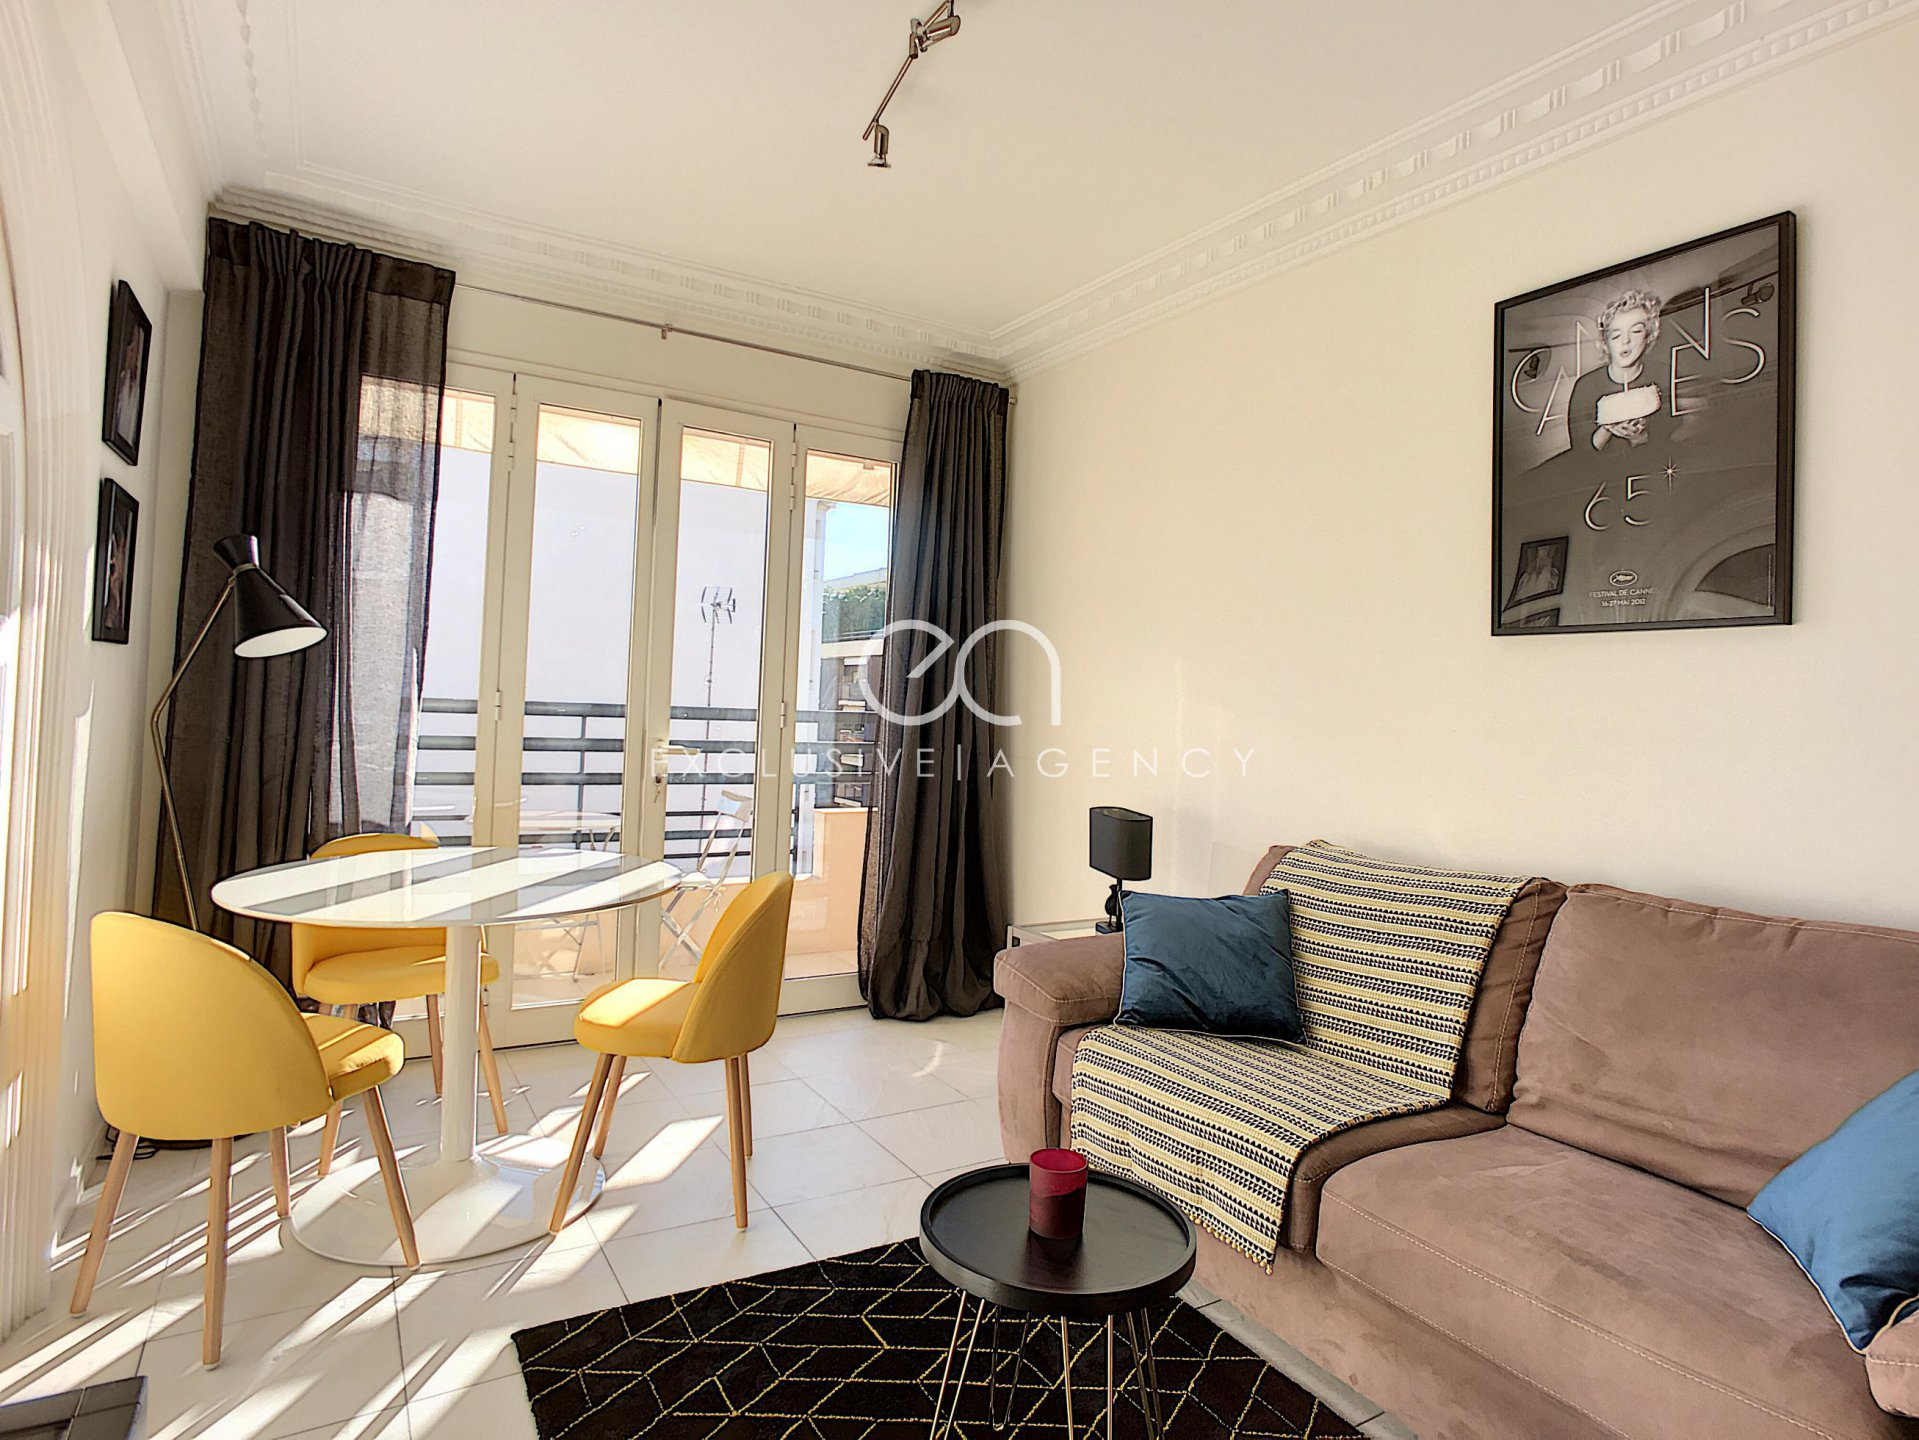 Shortly rental Cannes center 2-bedroom apartment 50sqm for 2 to 4 people.